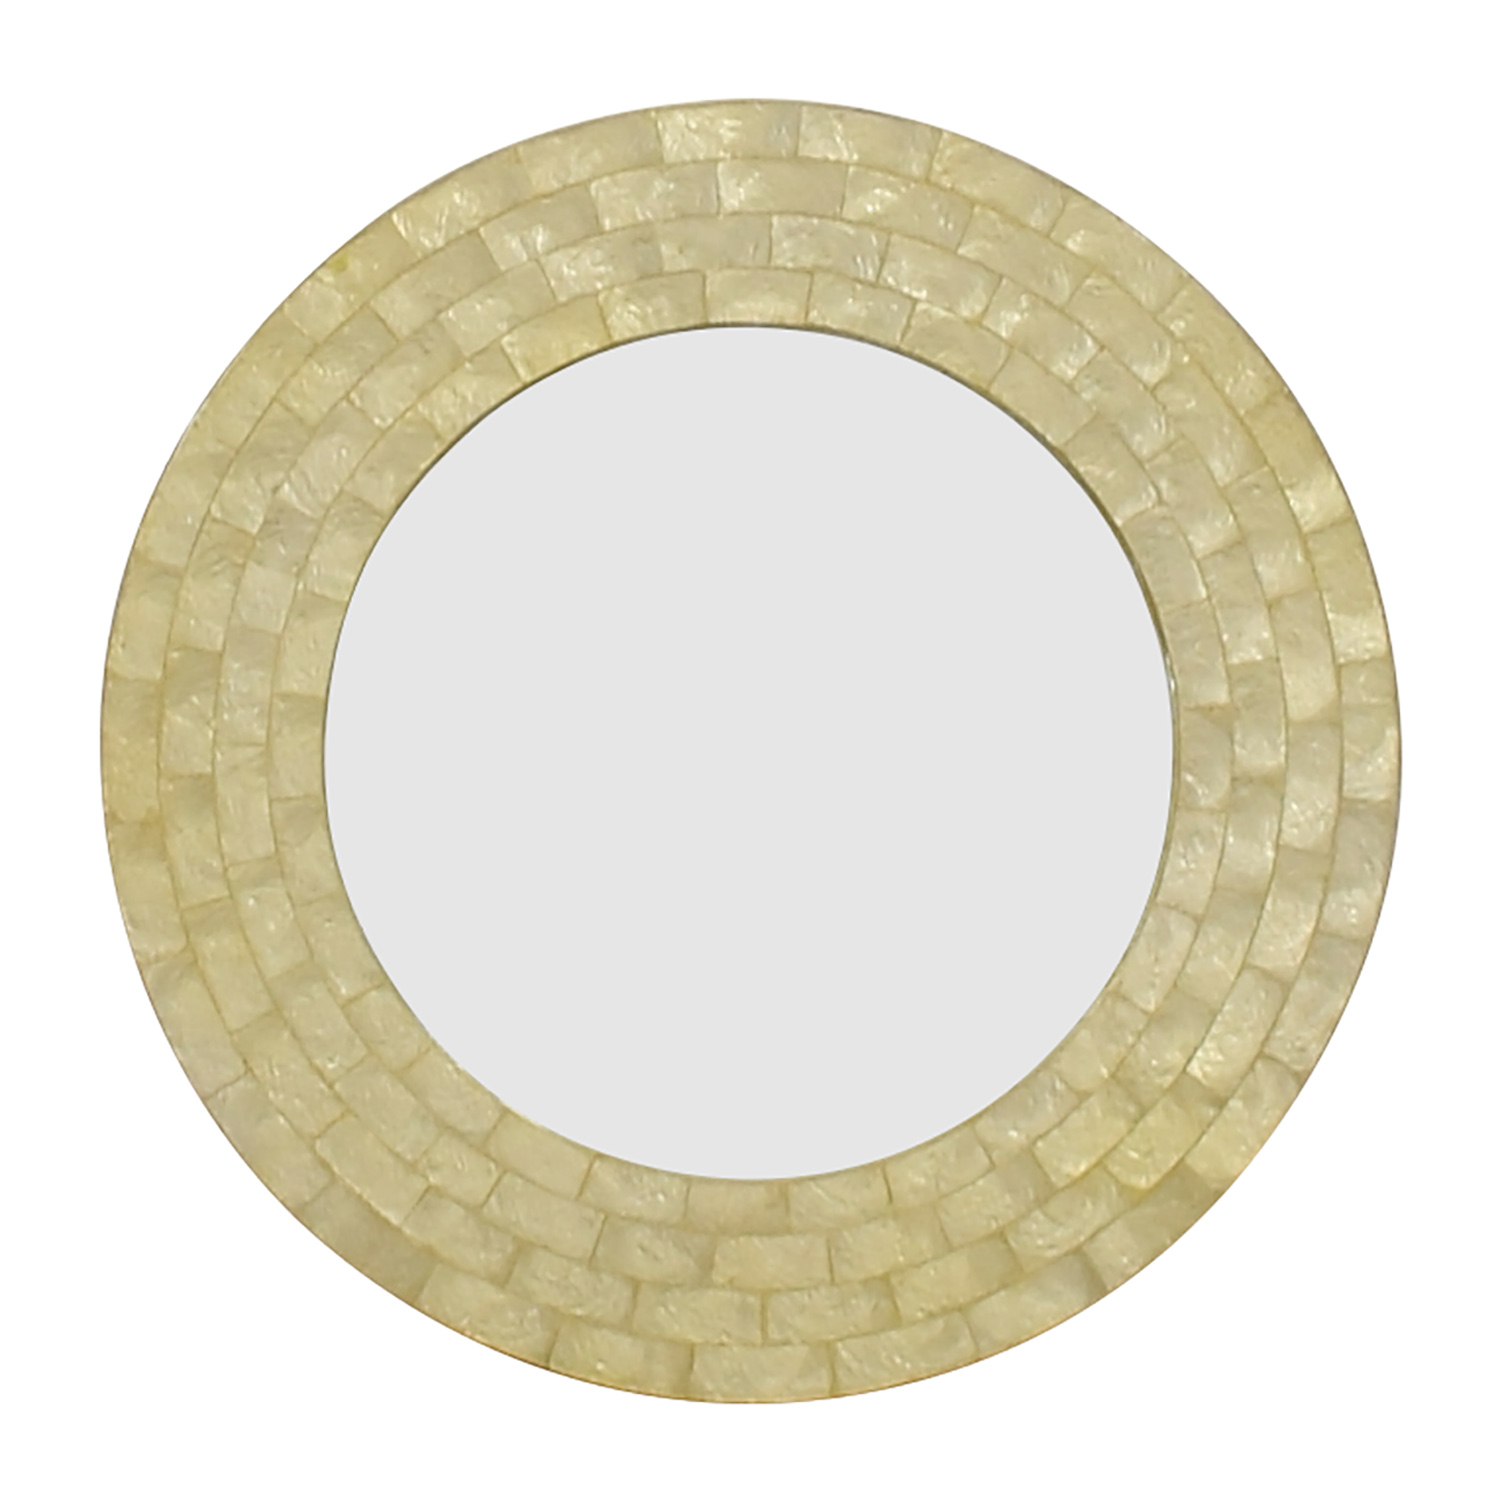 70% OFF - West Elm West Elm Mother of Pearl Round Mirror / Decor